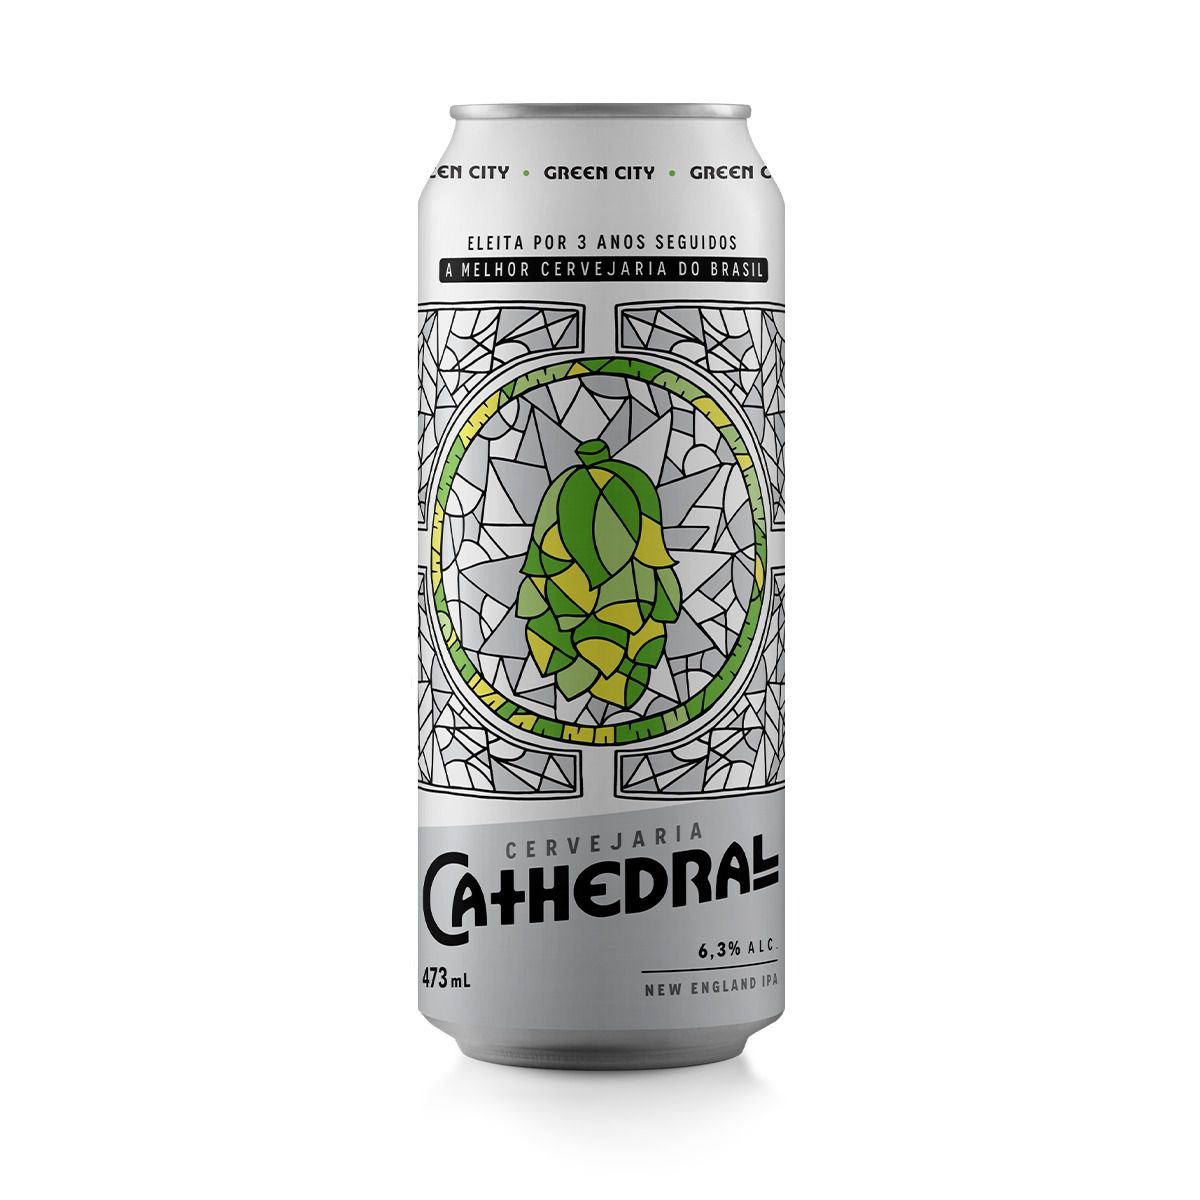 Cathedral Green City  NEIPA 473ml